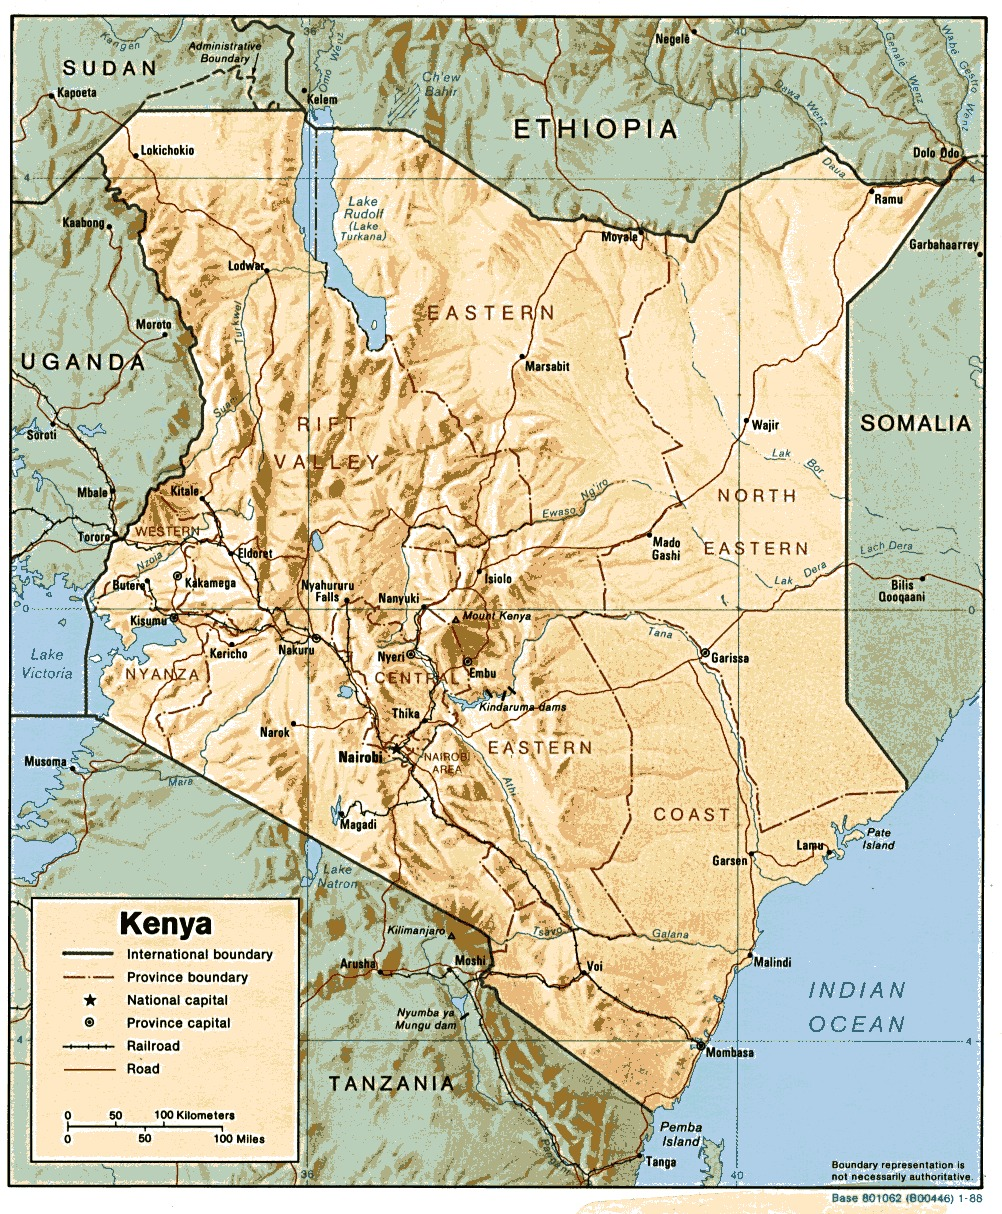 Kenya Shaded Relief Map